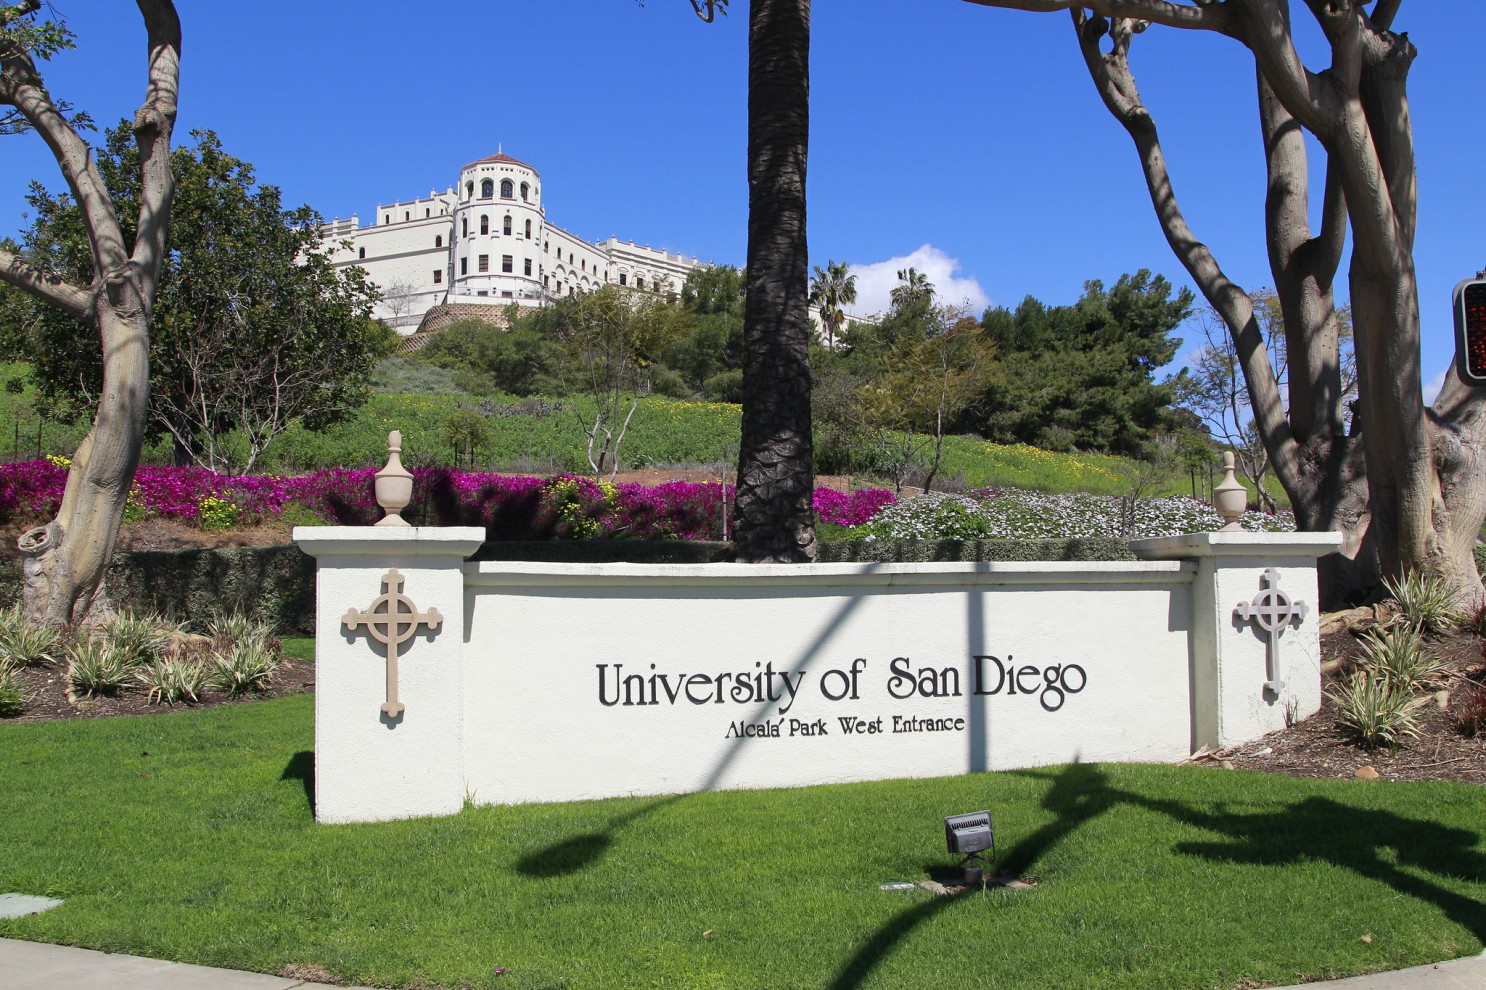 Tutoring Services at the University of San Diego